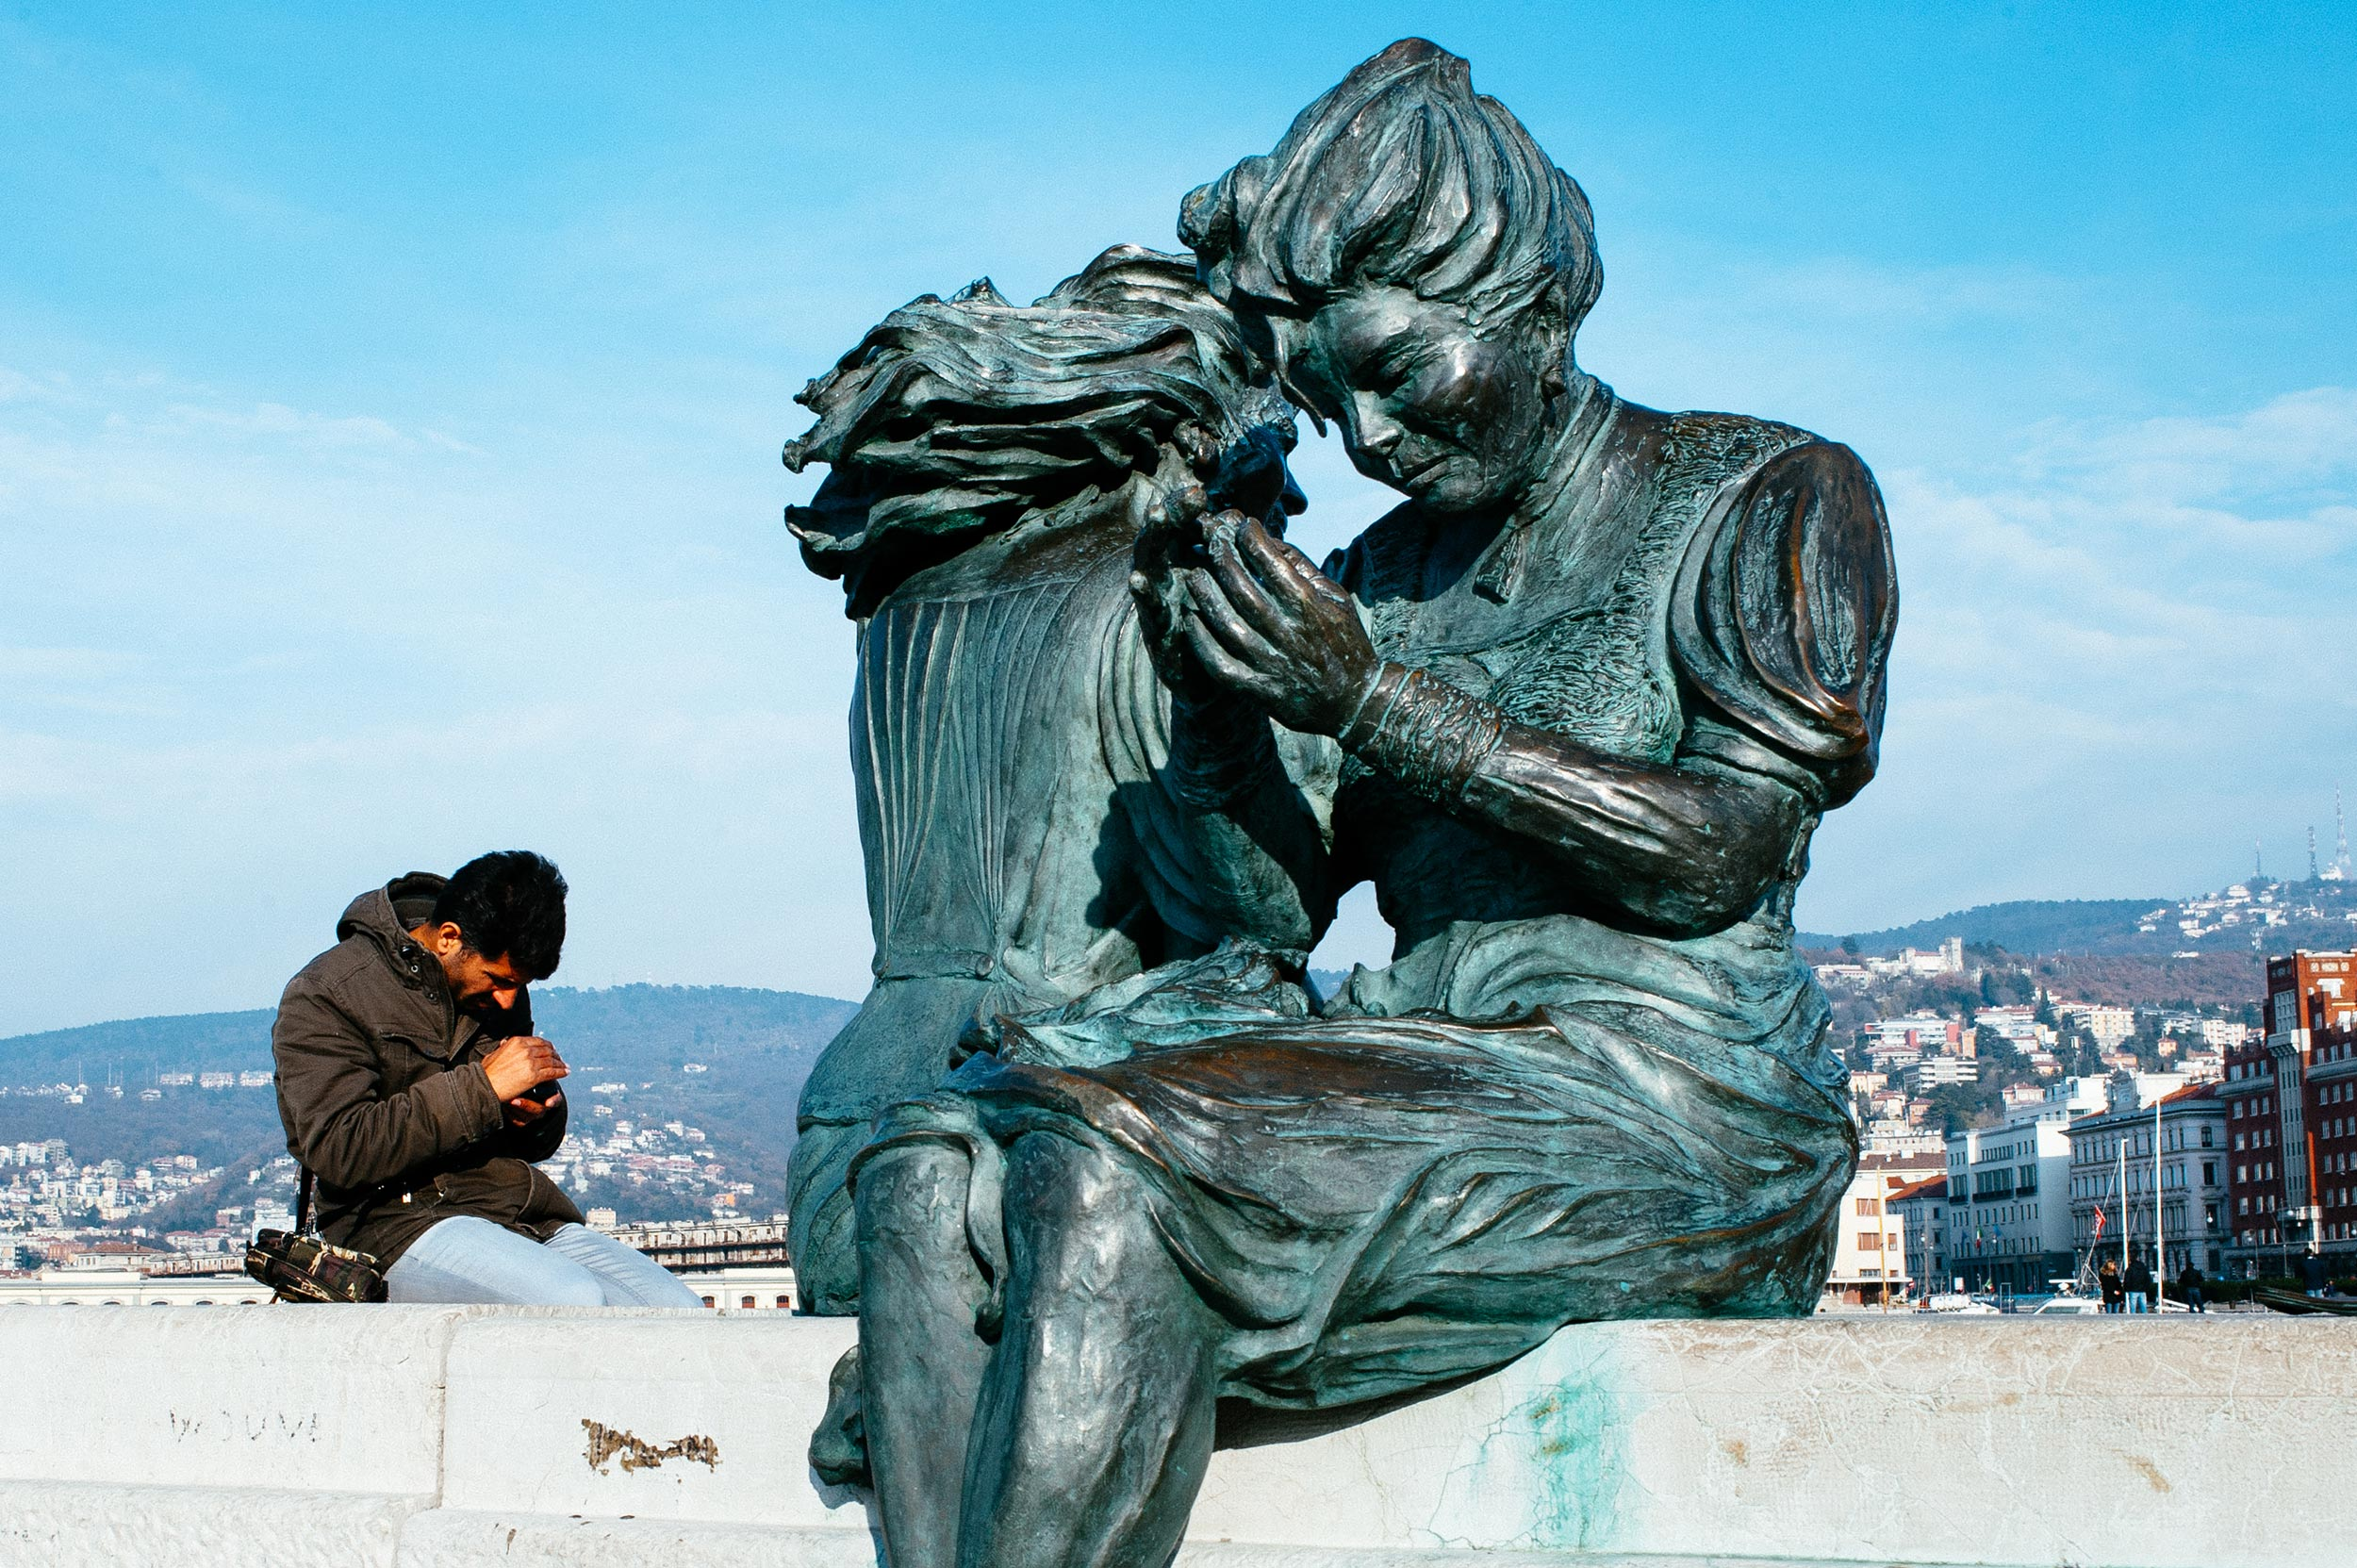 Trieste, Italy, 2015. A man looking at his smartphone has the same pose as a bronze statue near him.